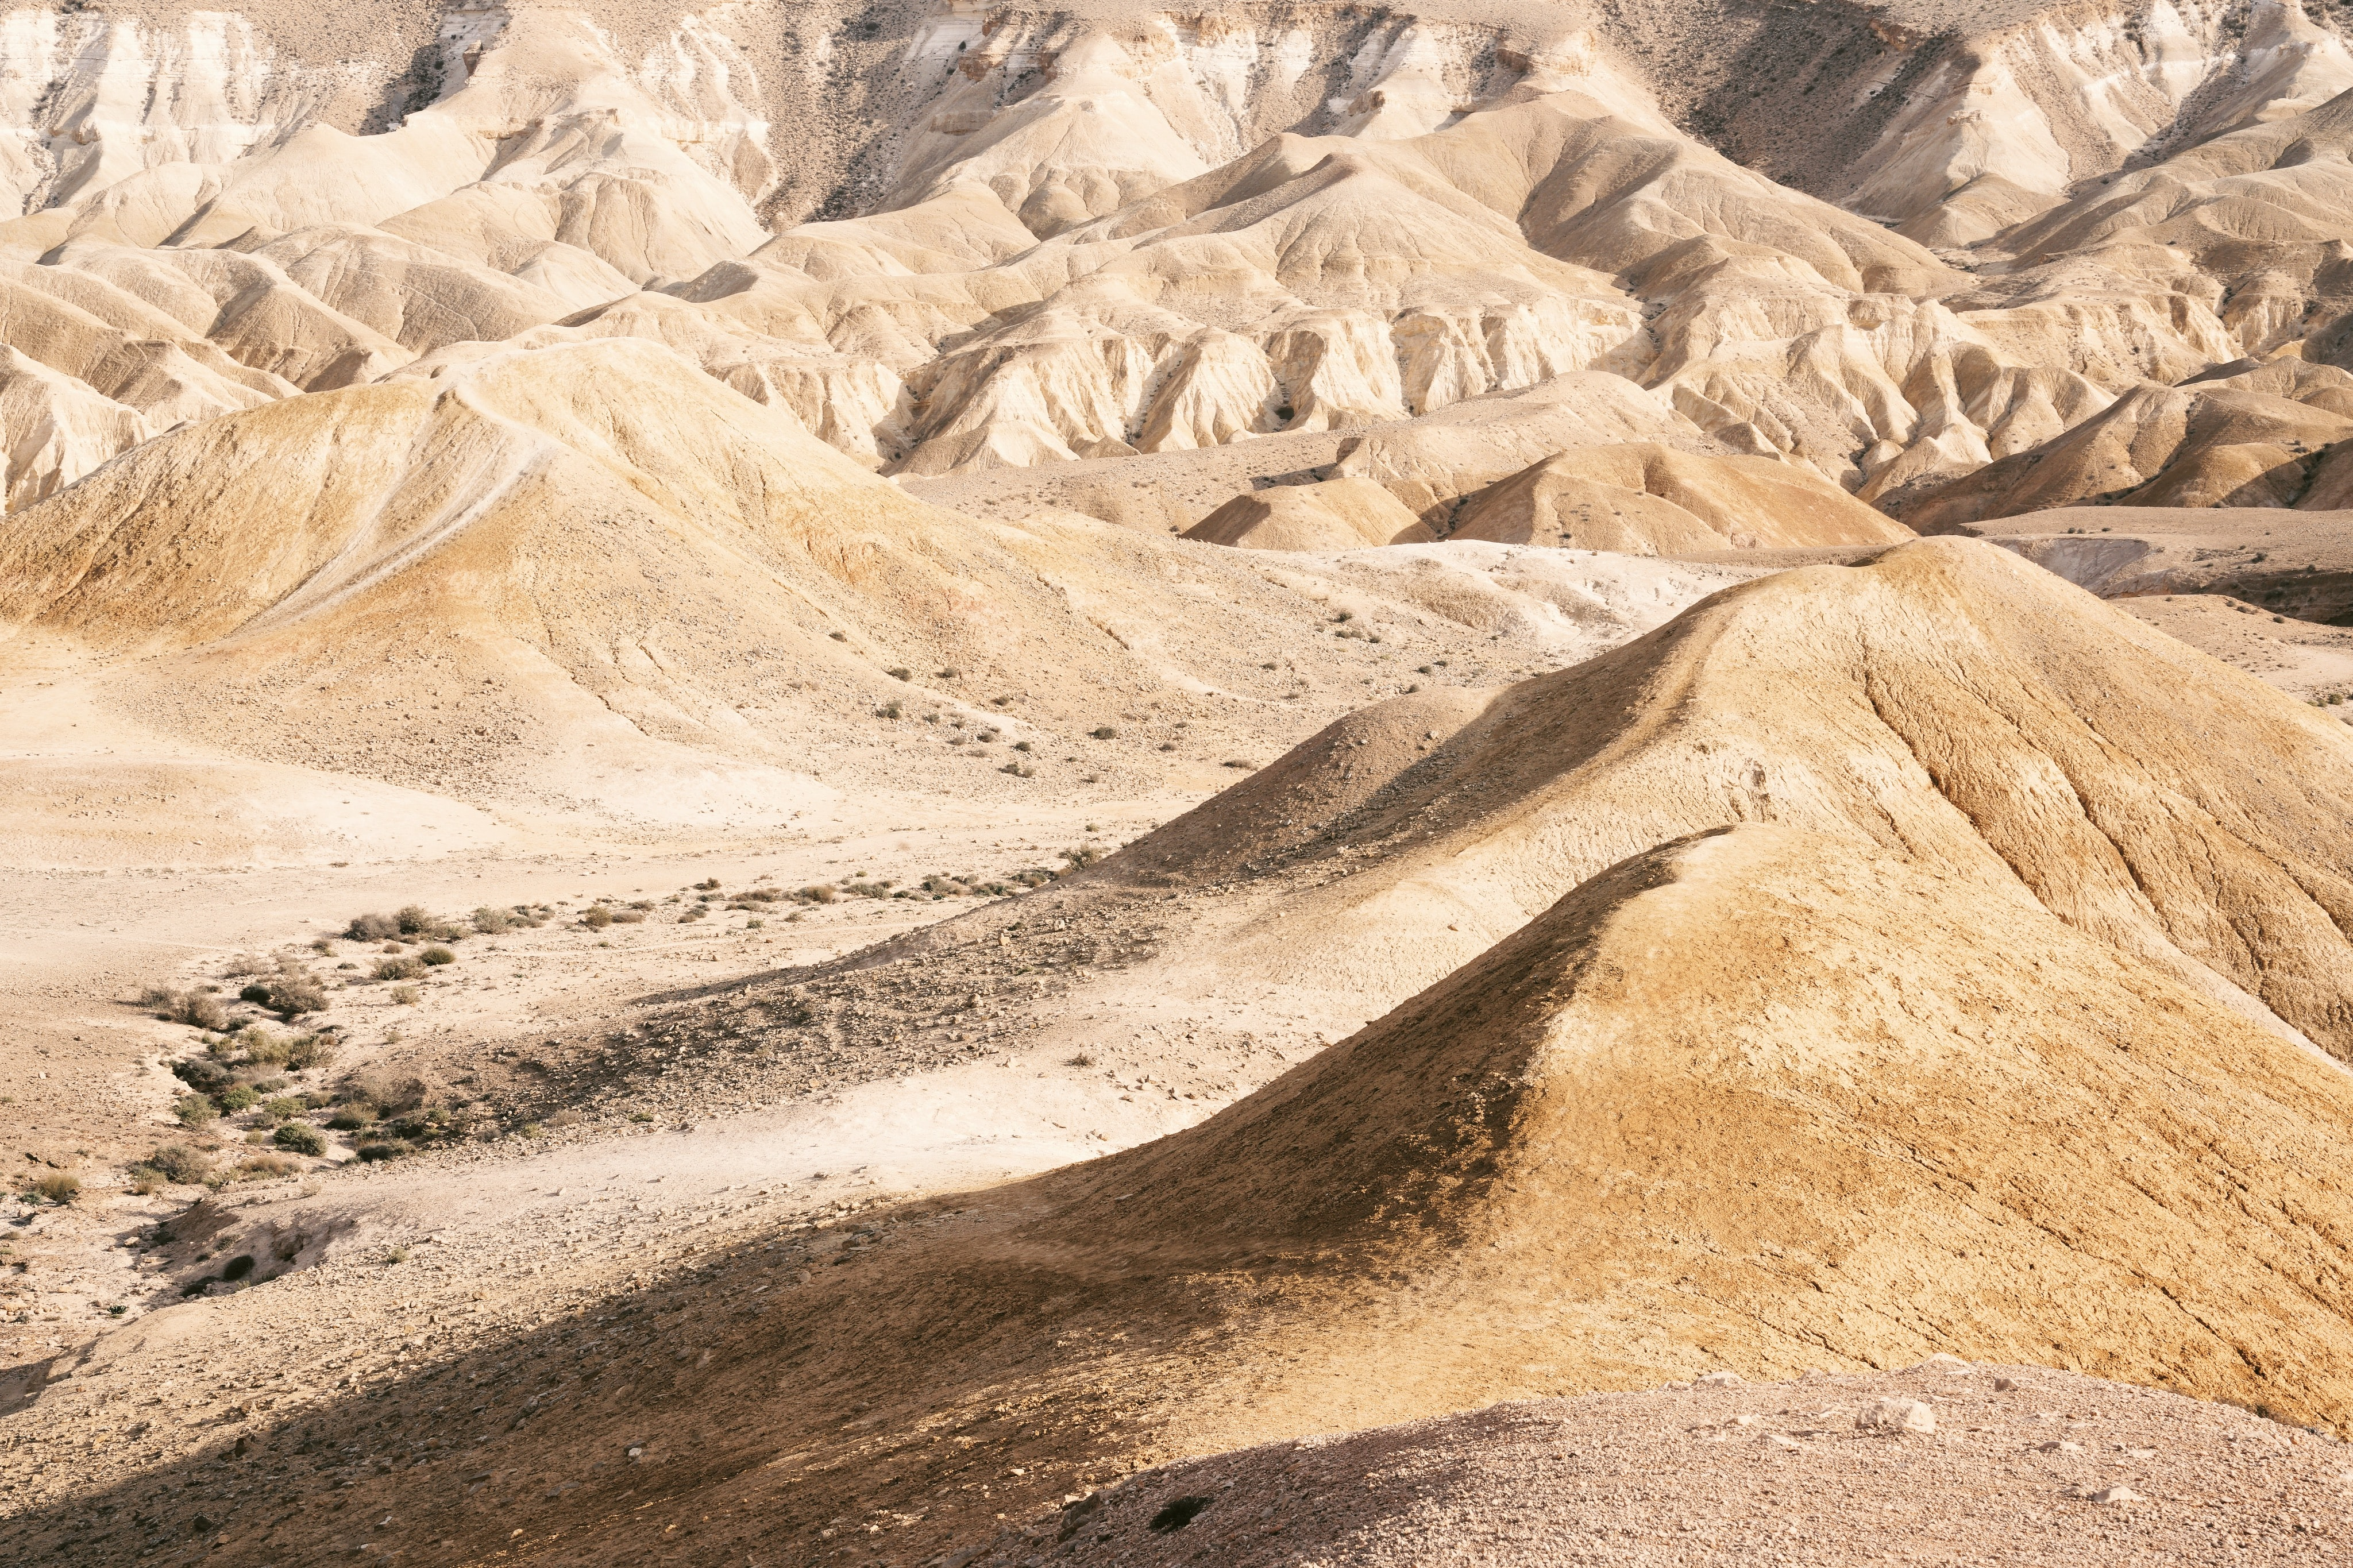 Arid sand dunes form peaks in the desert of Yeruham